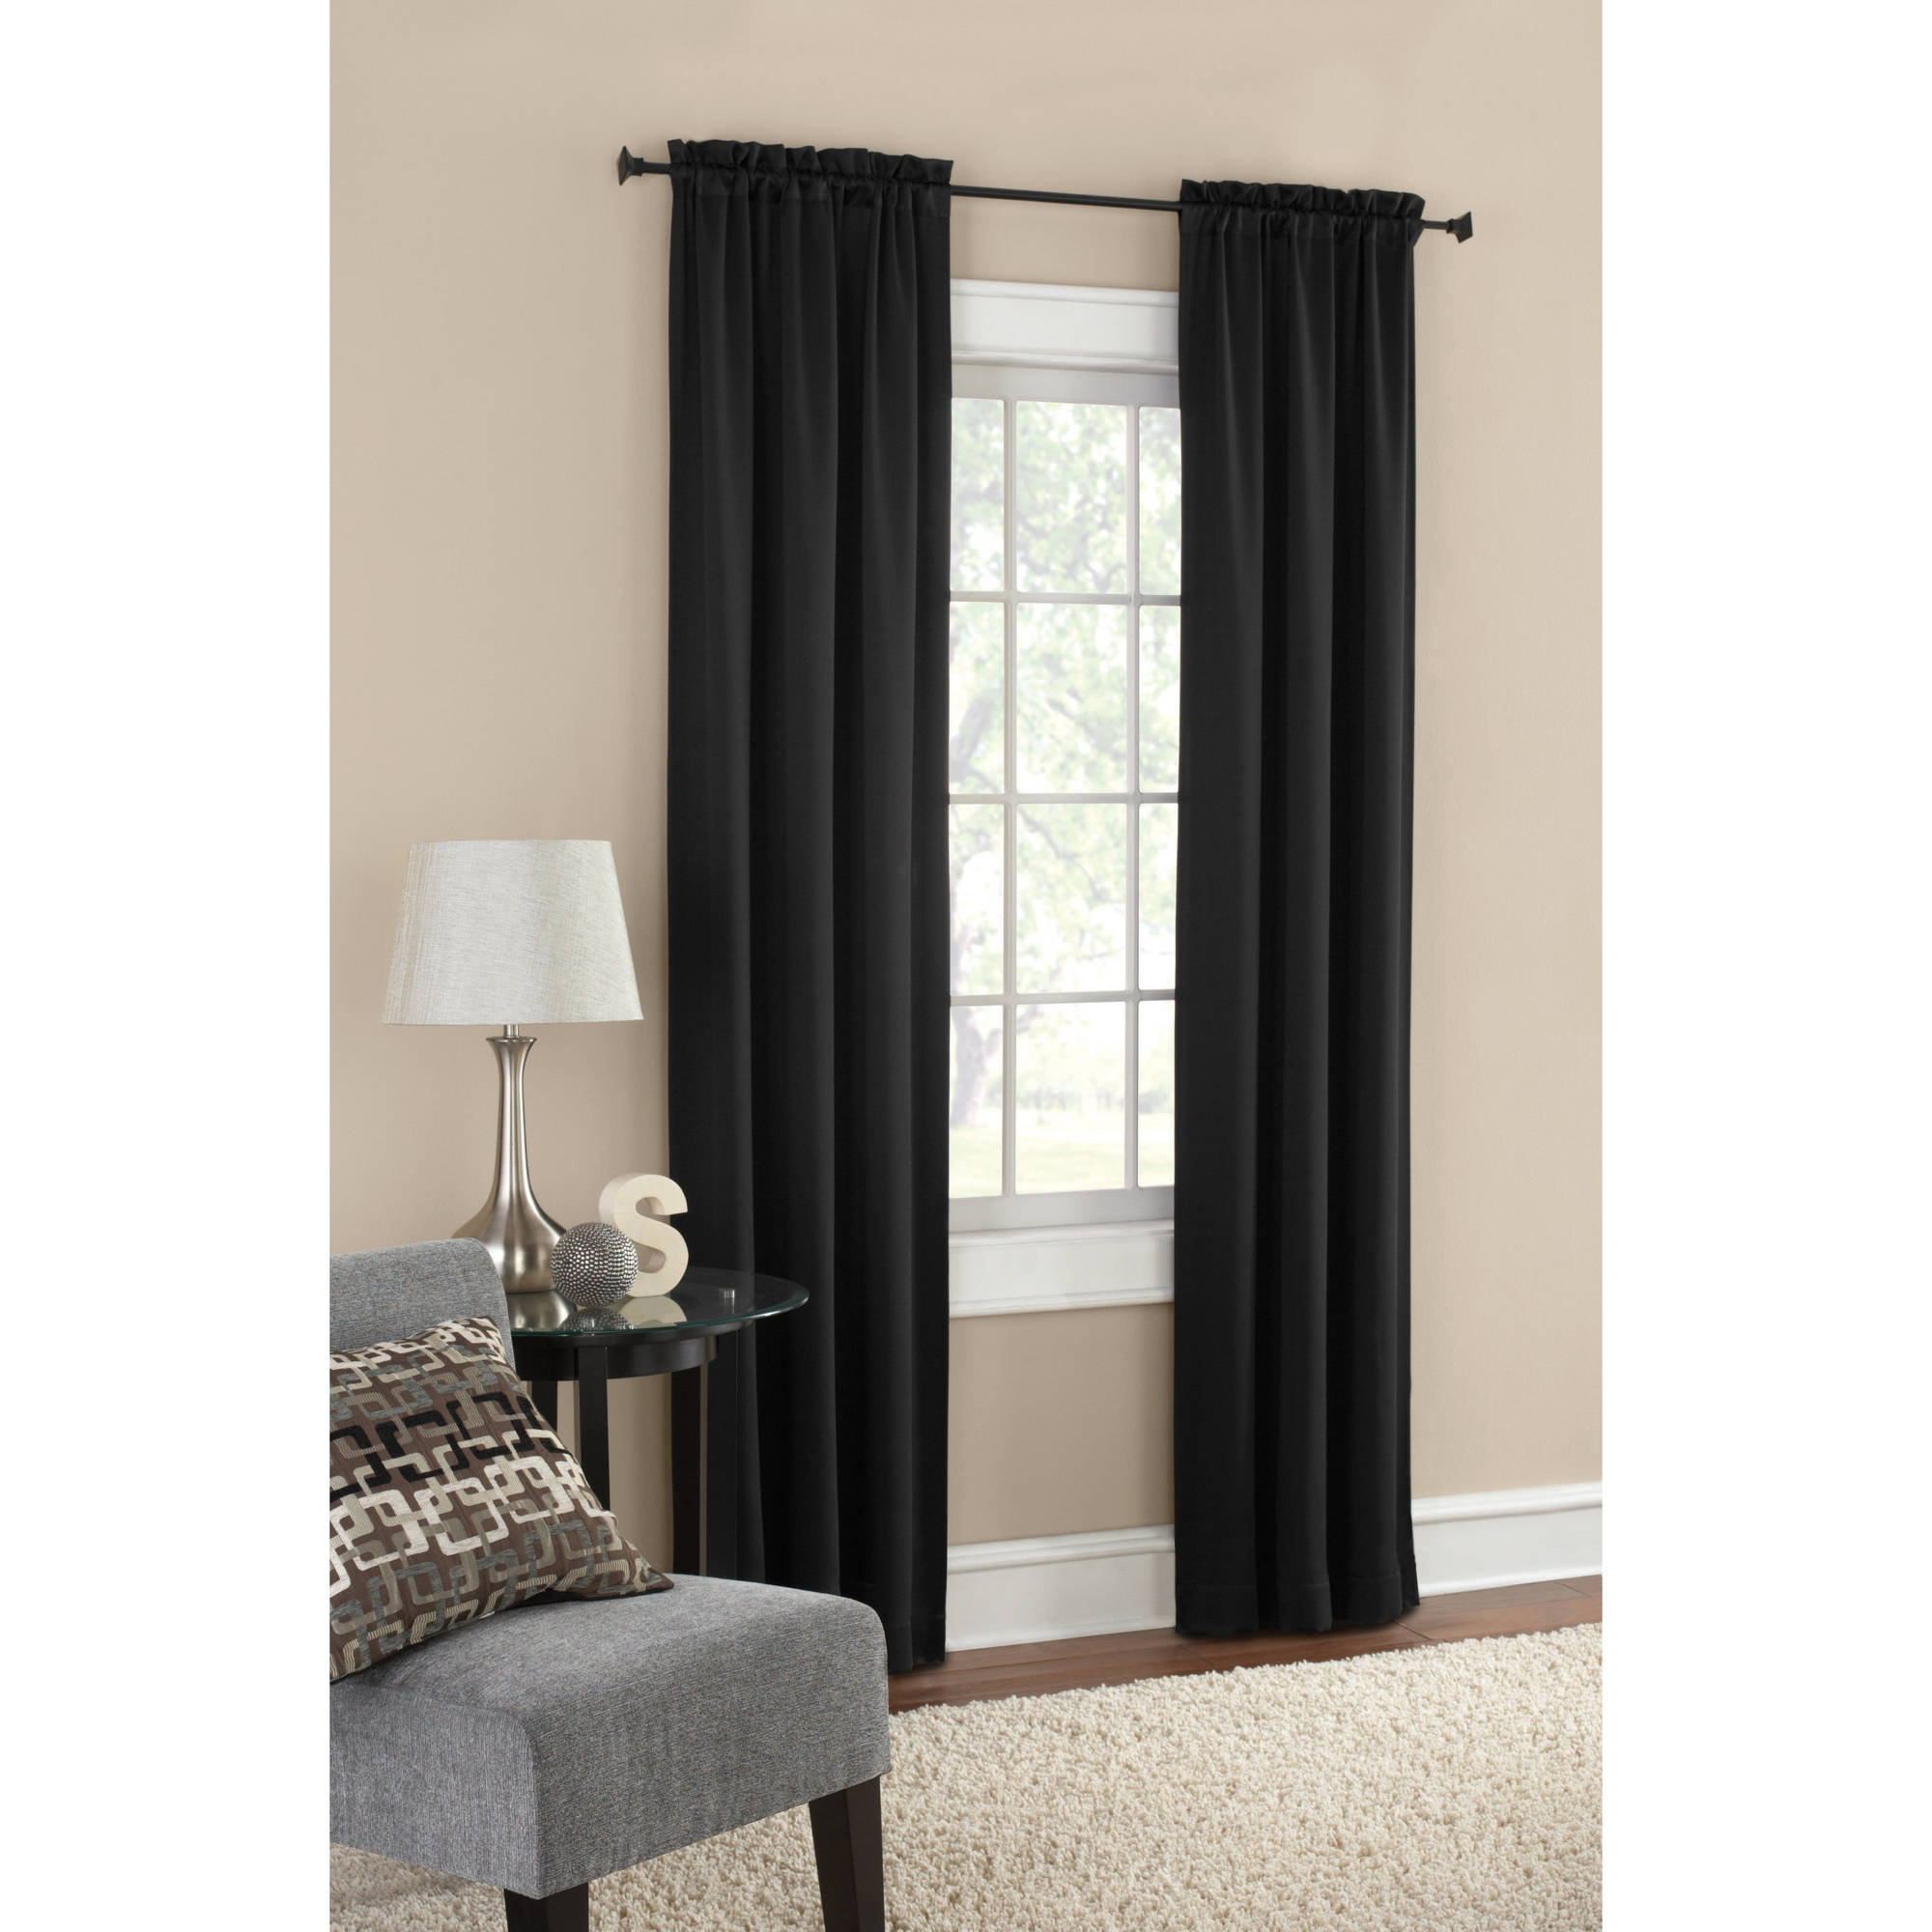 Mainstays Curtains Window Treatments Walmart Pertaining To Dark Grey Sheer Curtains (Image 21 of 25)